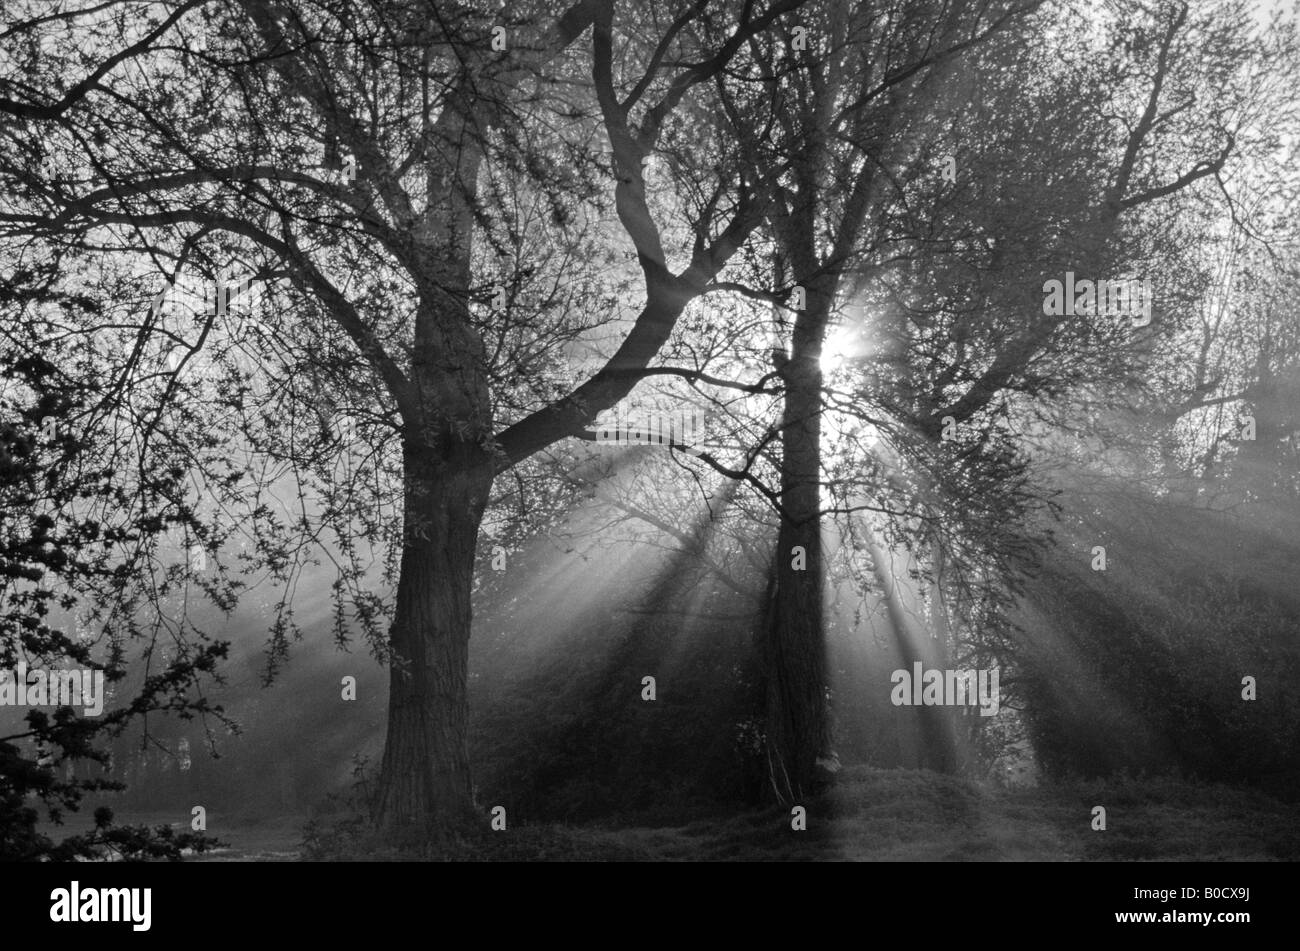 Sun Rising Through Trees in Black and White - Stock Image